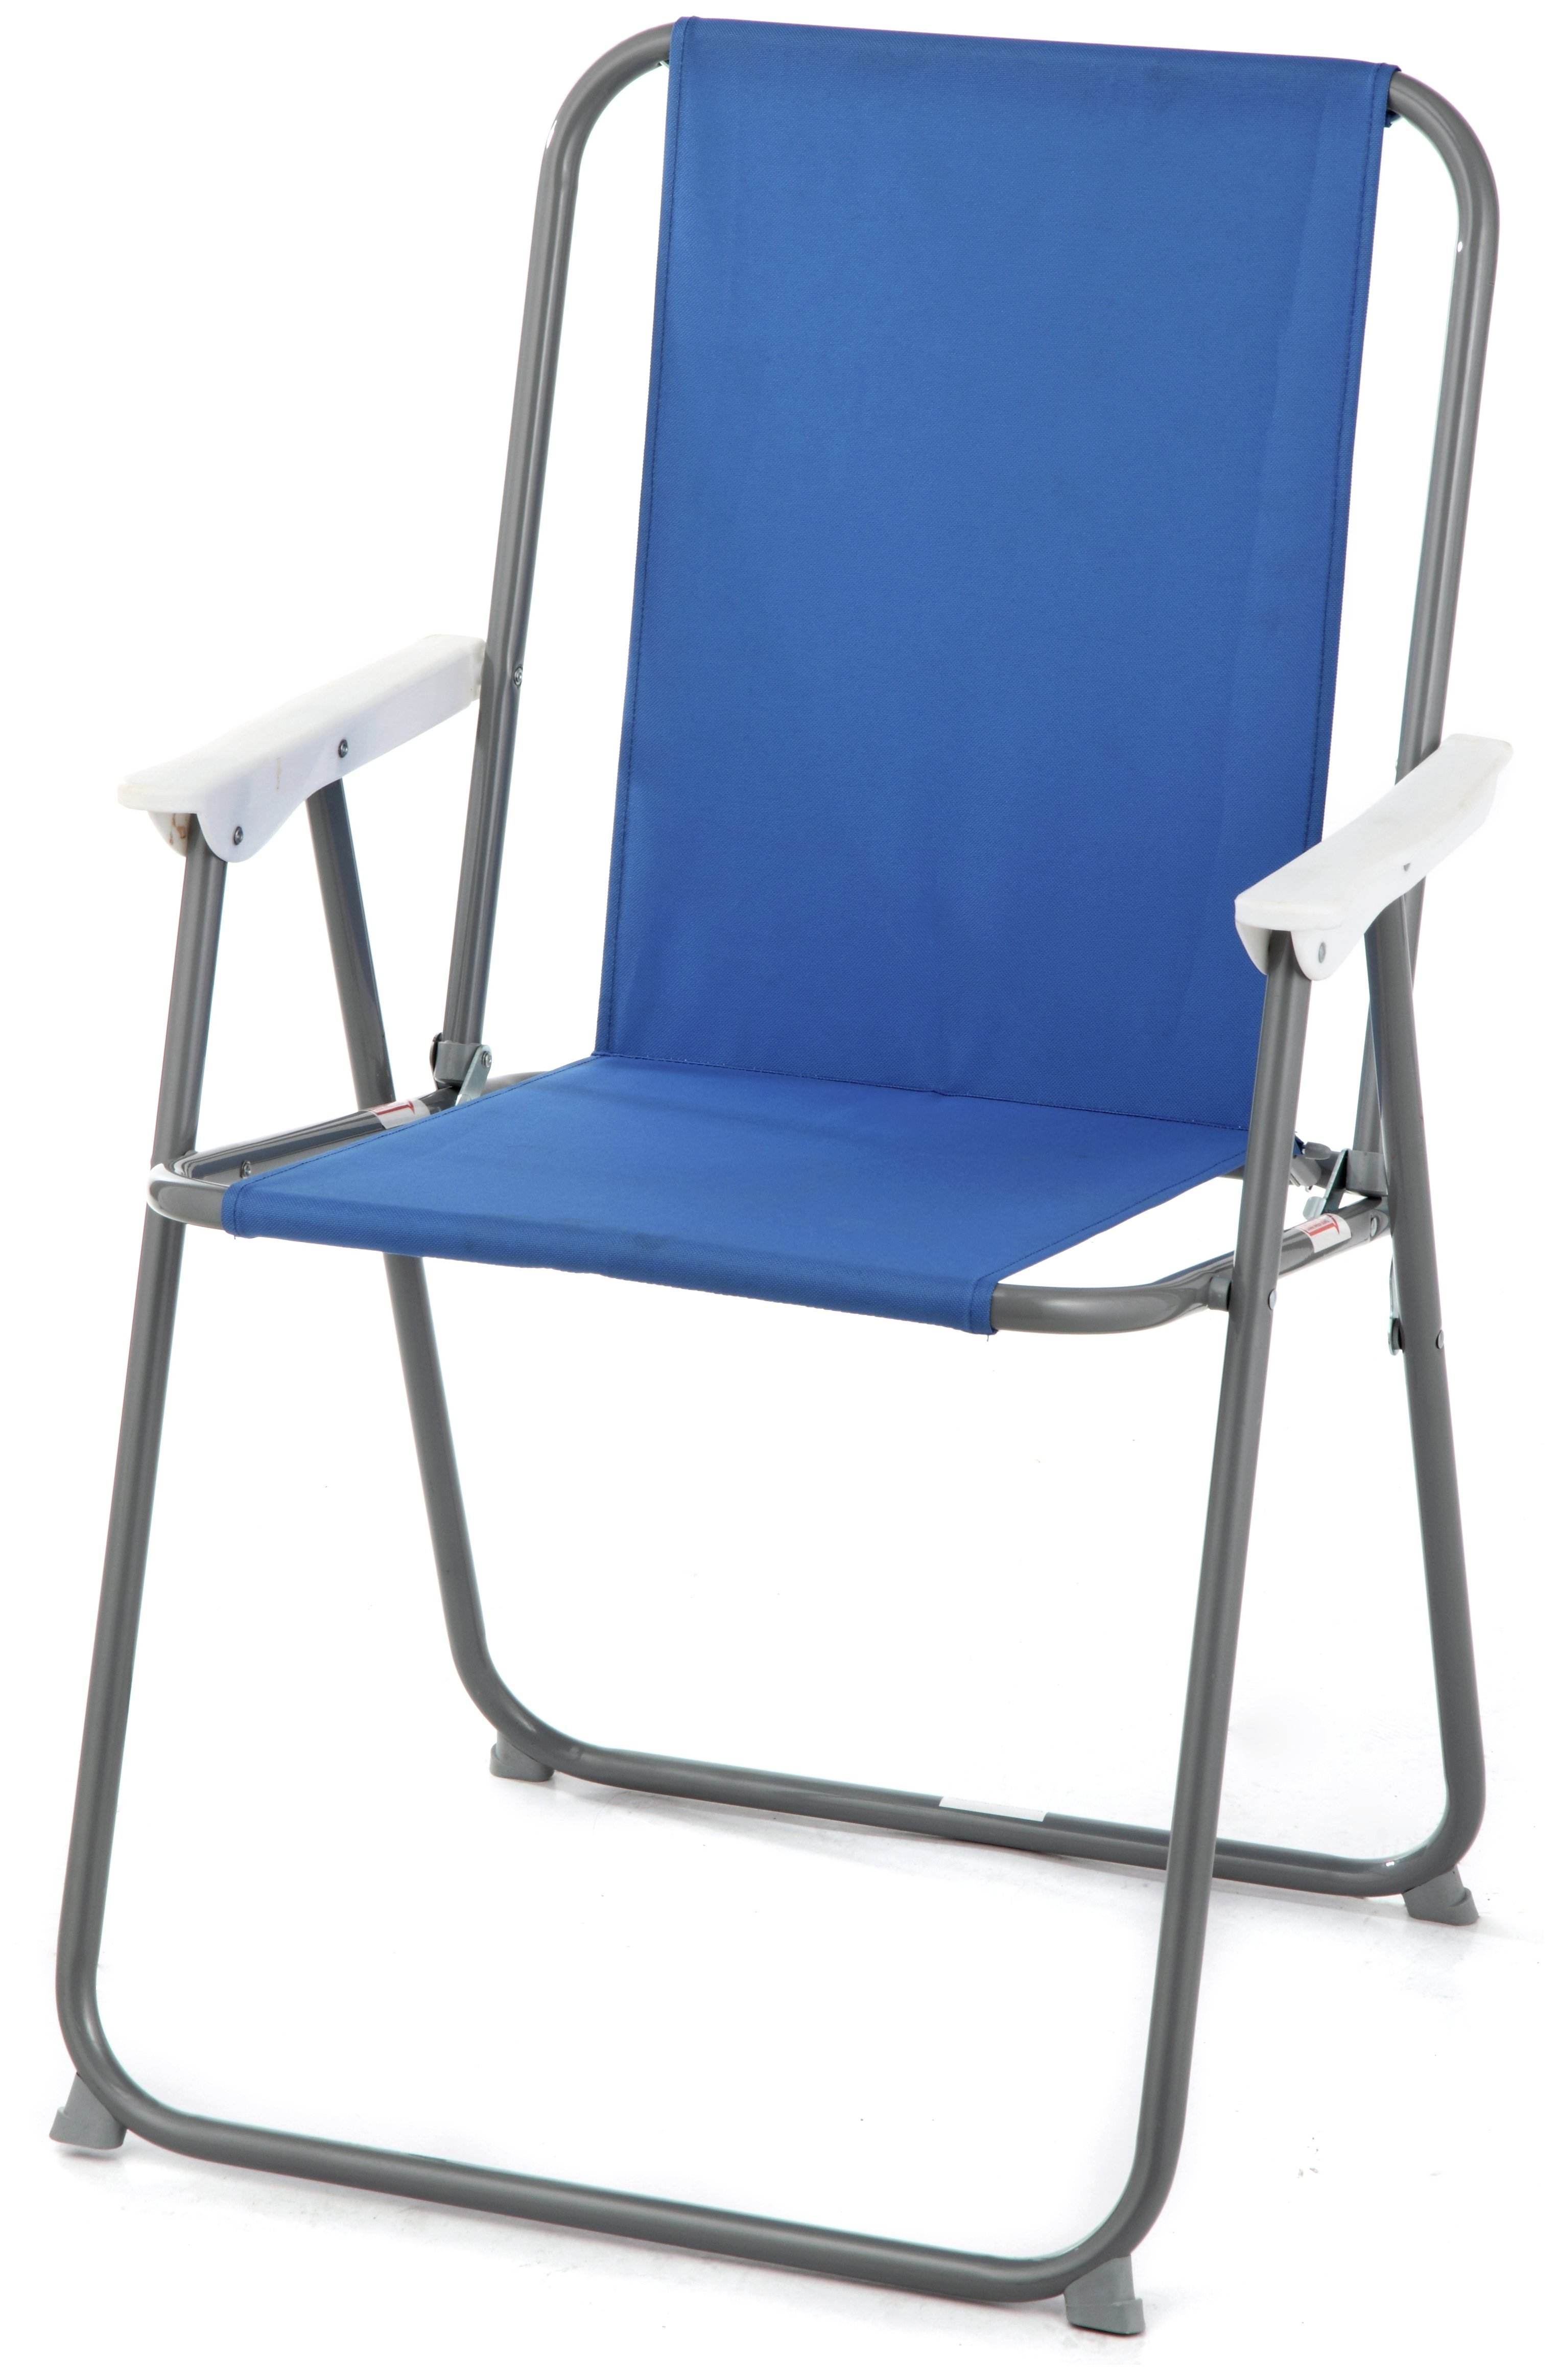 aluminium reclining garden chairs uk design chair for you advantages of folding  goodworksfurniture